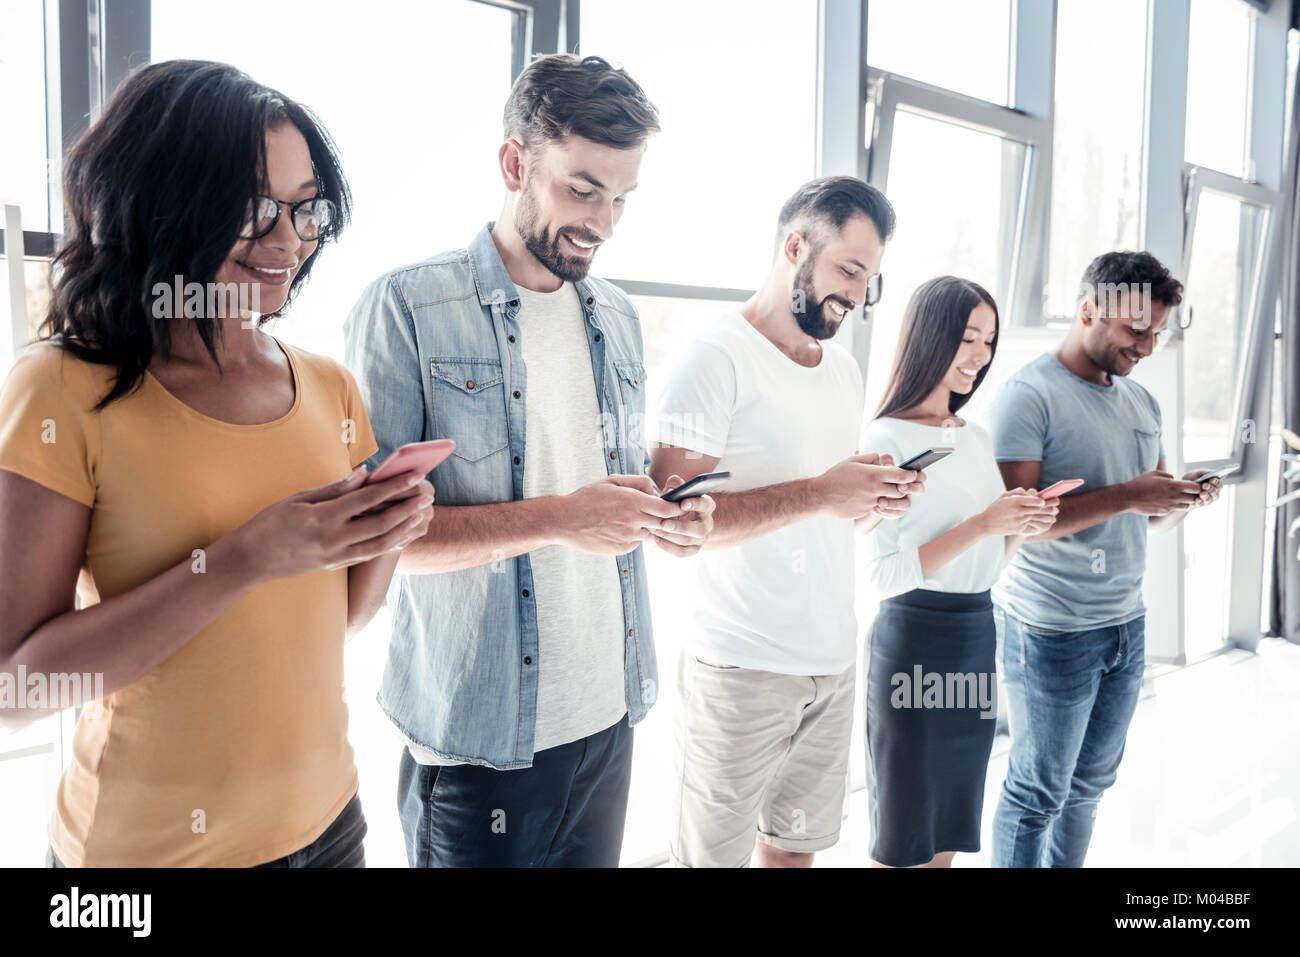 Smiling people using smartphones together - Stock Image